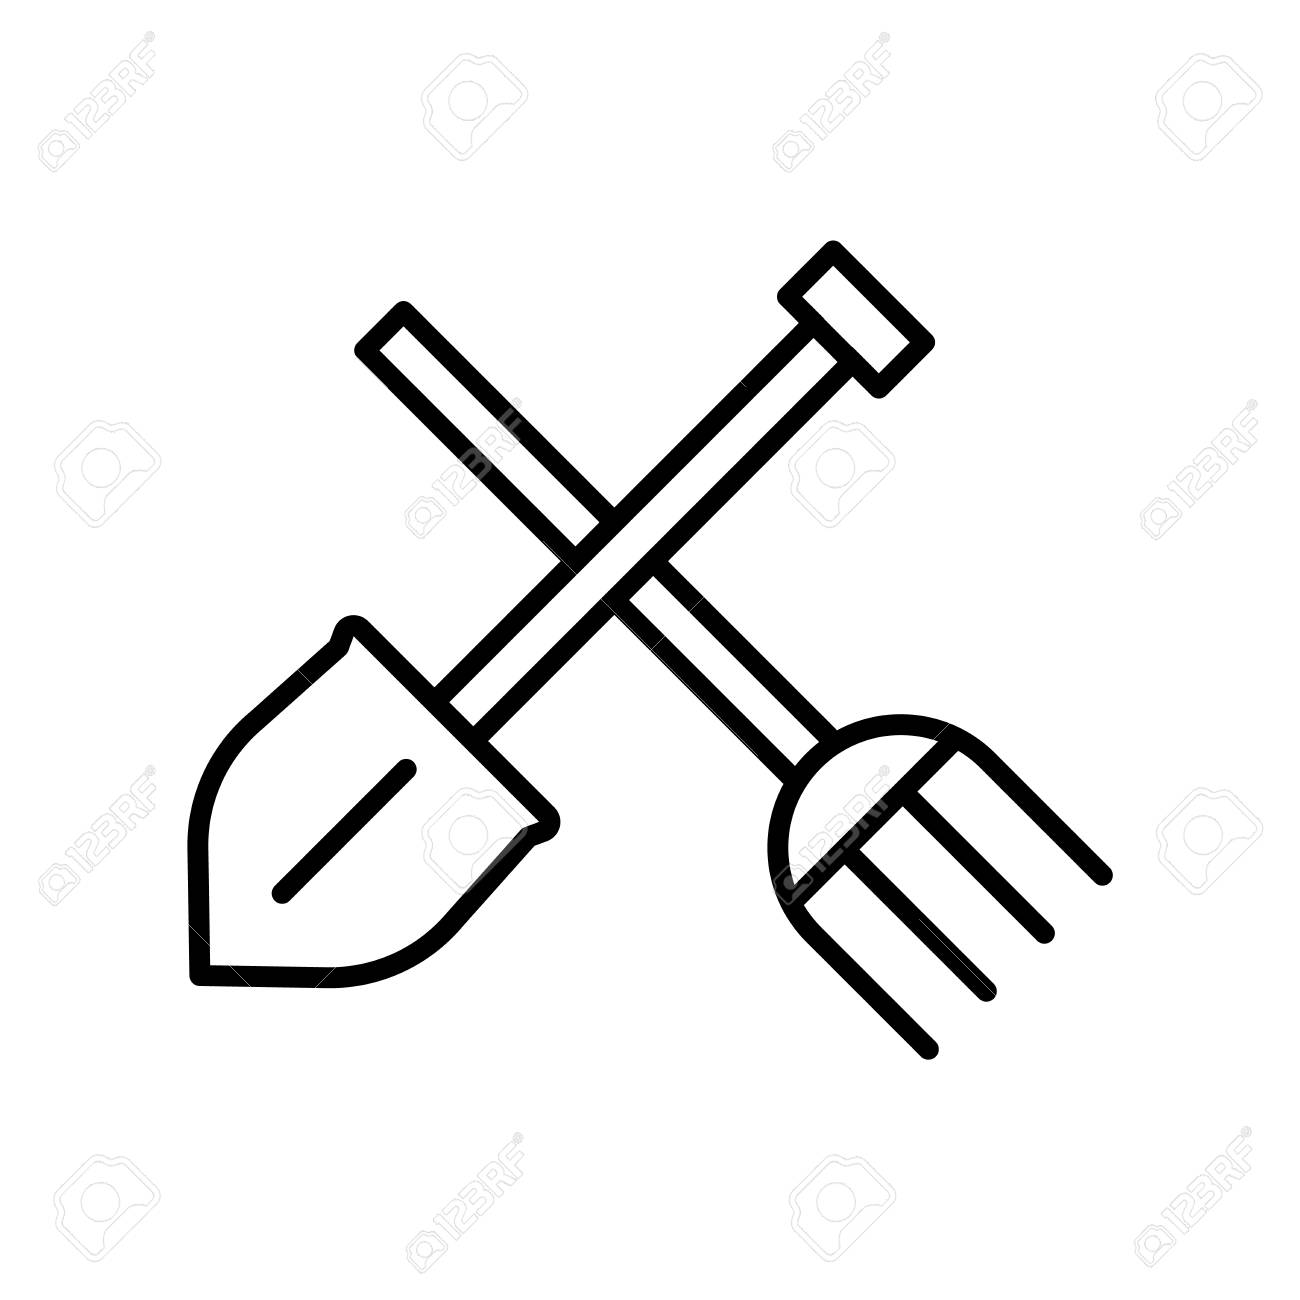 Gardening Tools Clipart Black And White 10 Free Cliparts